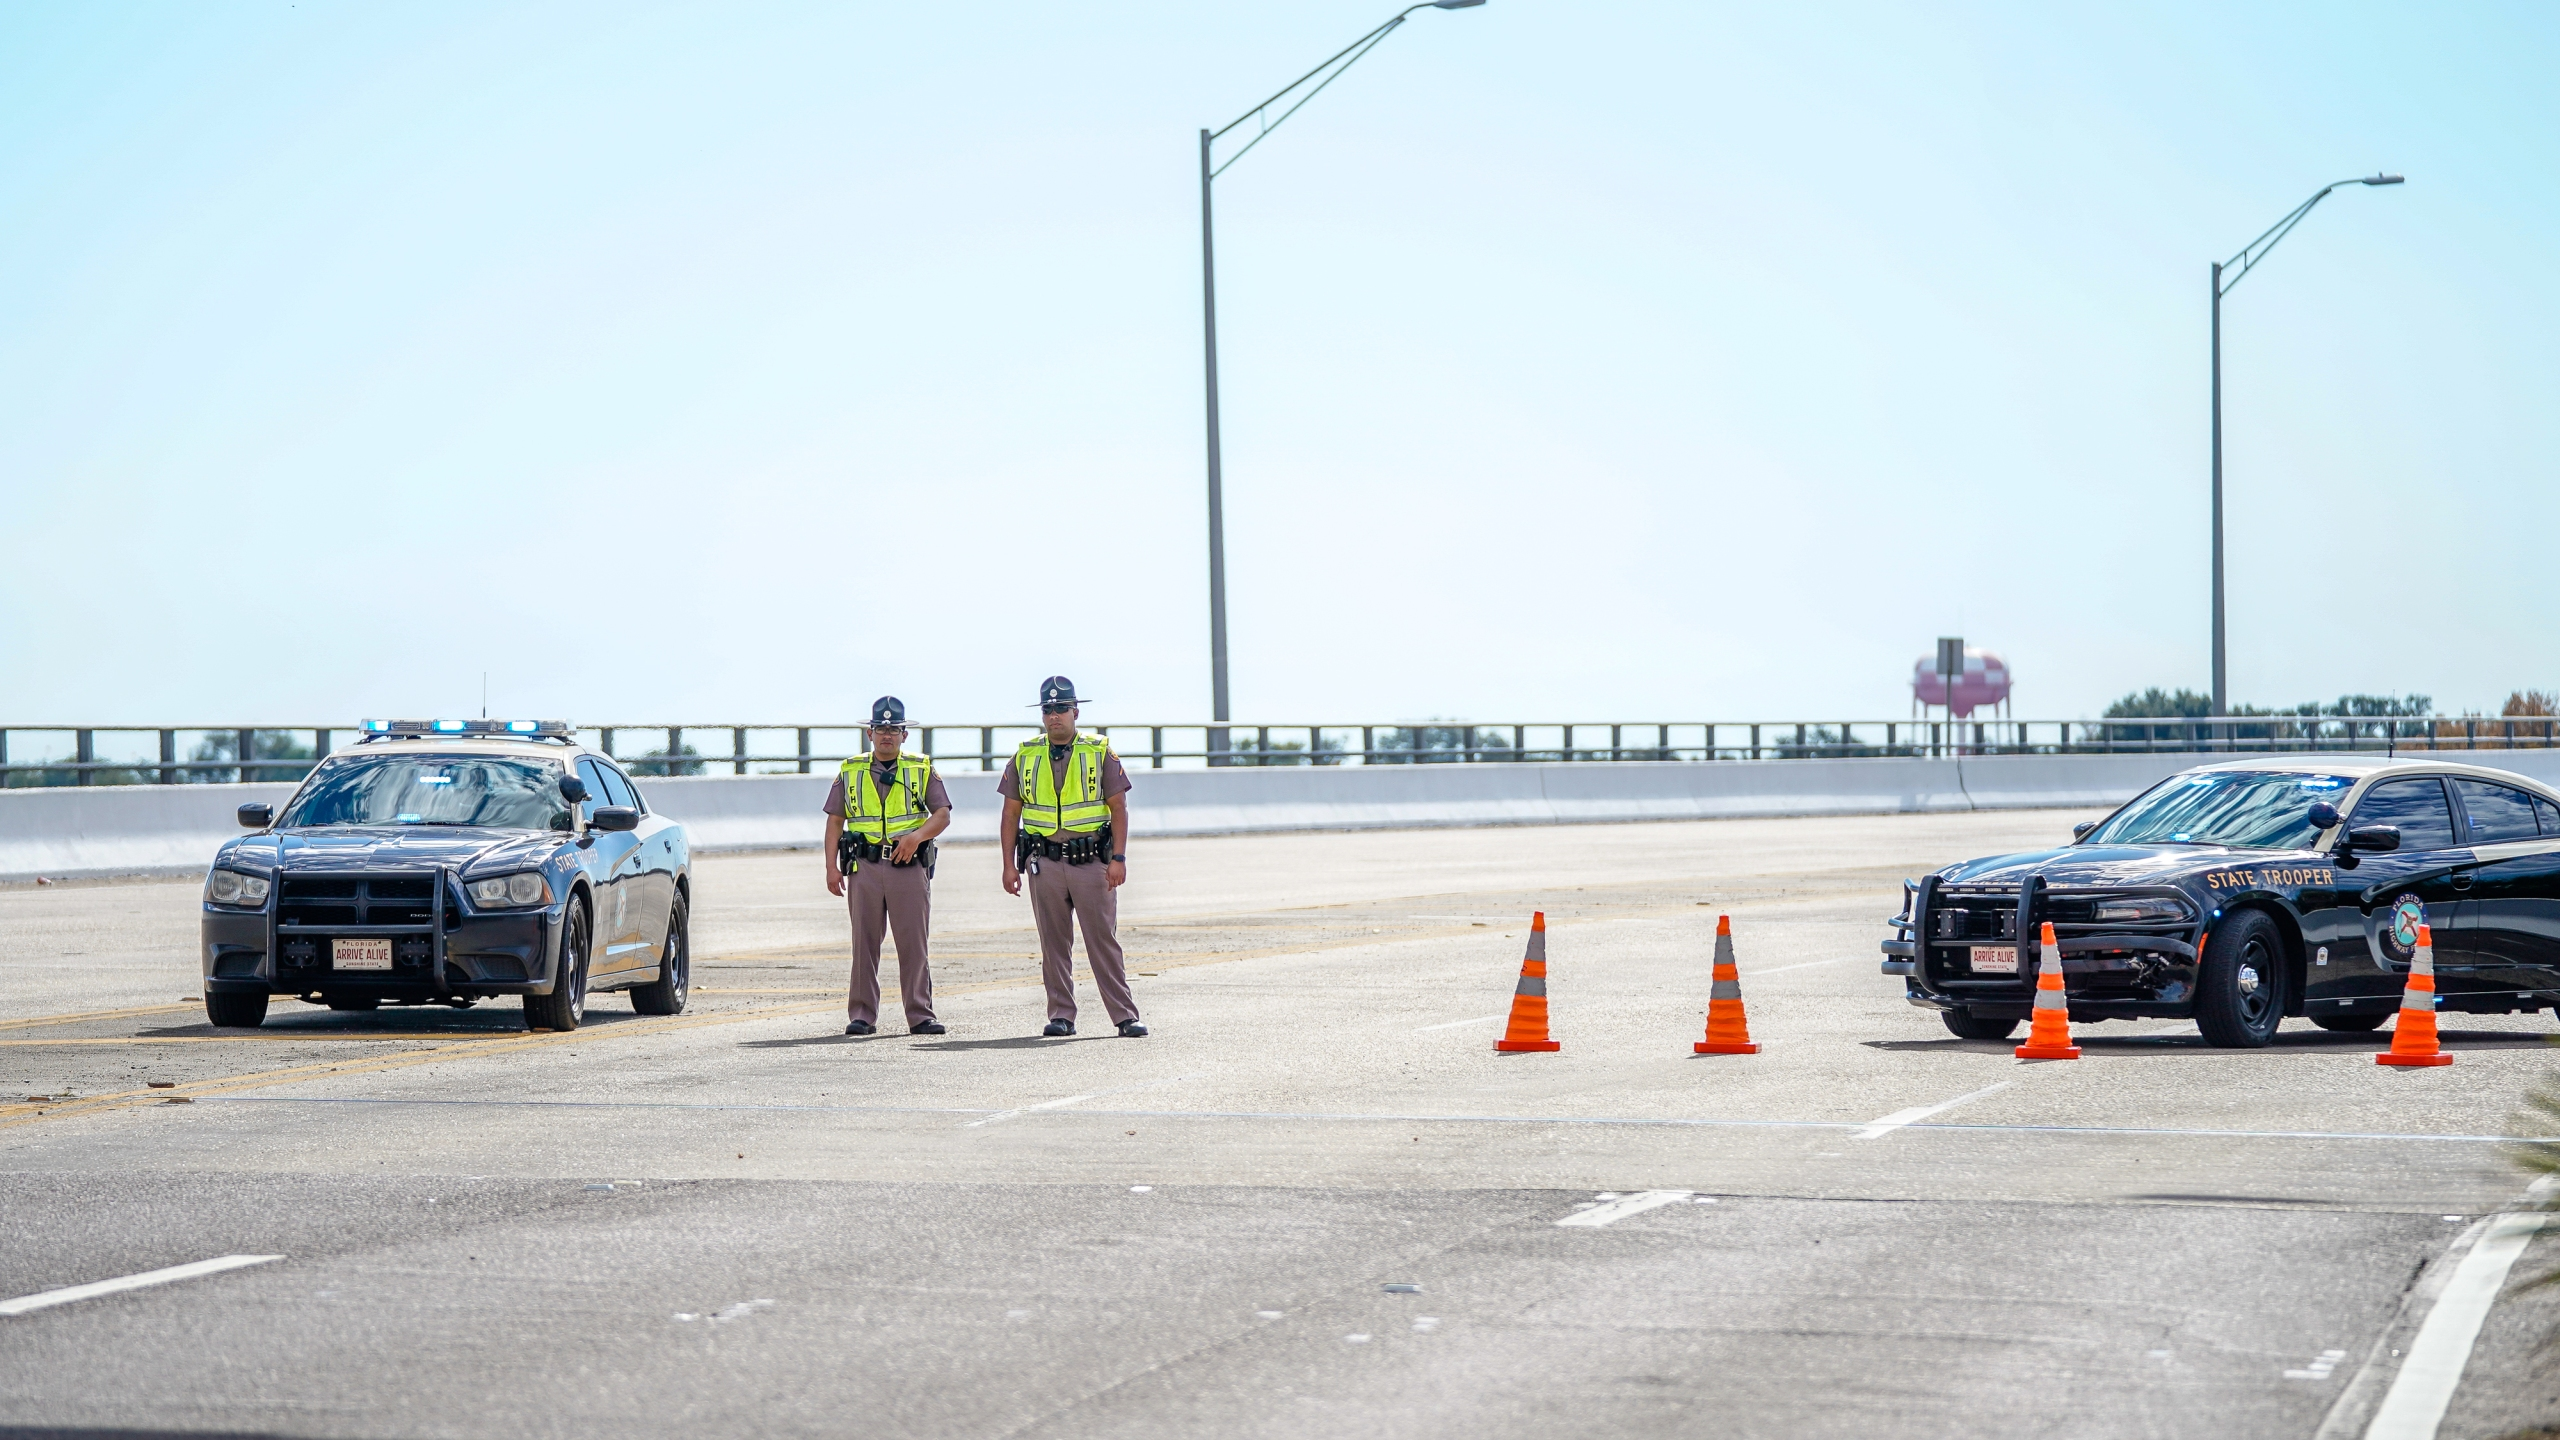 Florida State Troopers block traffic over the Bayou Grande Bridge leading to the Pensacola Naval Air Station following a shooting on Dec. 6, 2019 in Pensacola. (Credit: Josh Brasted/Getty Images)